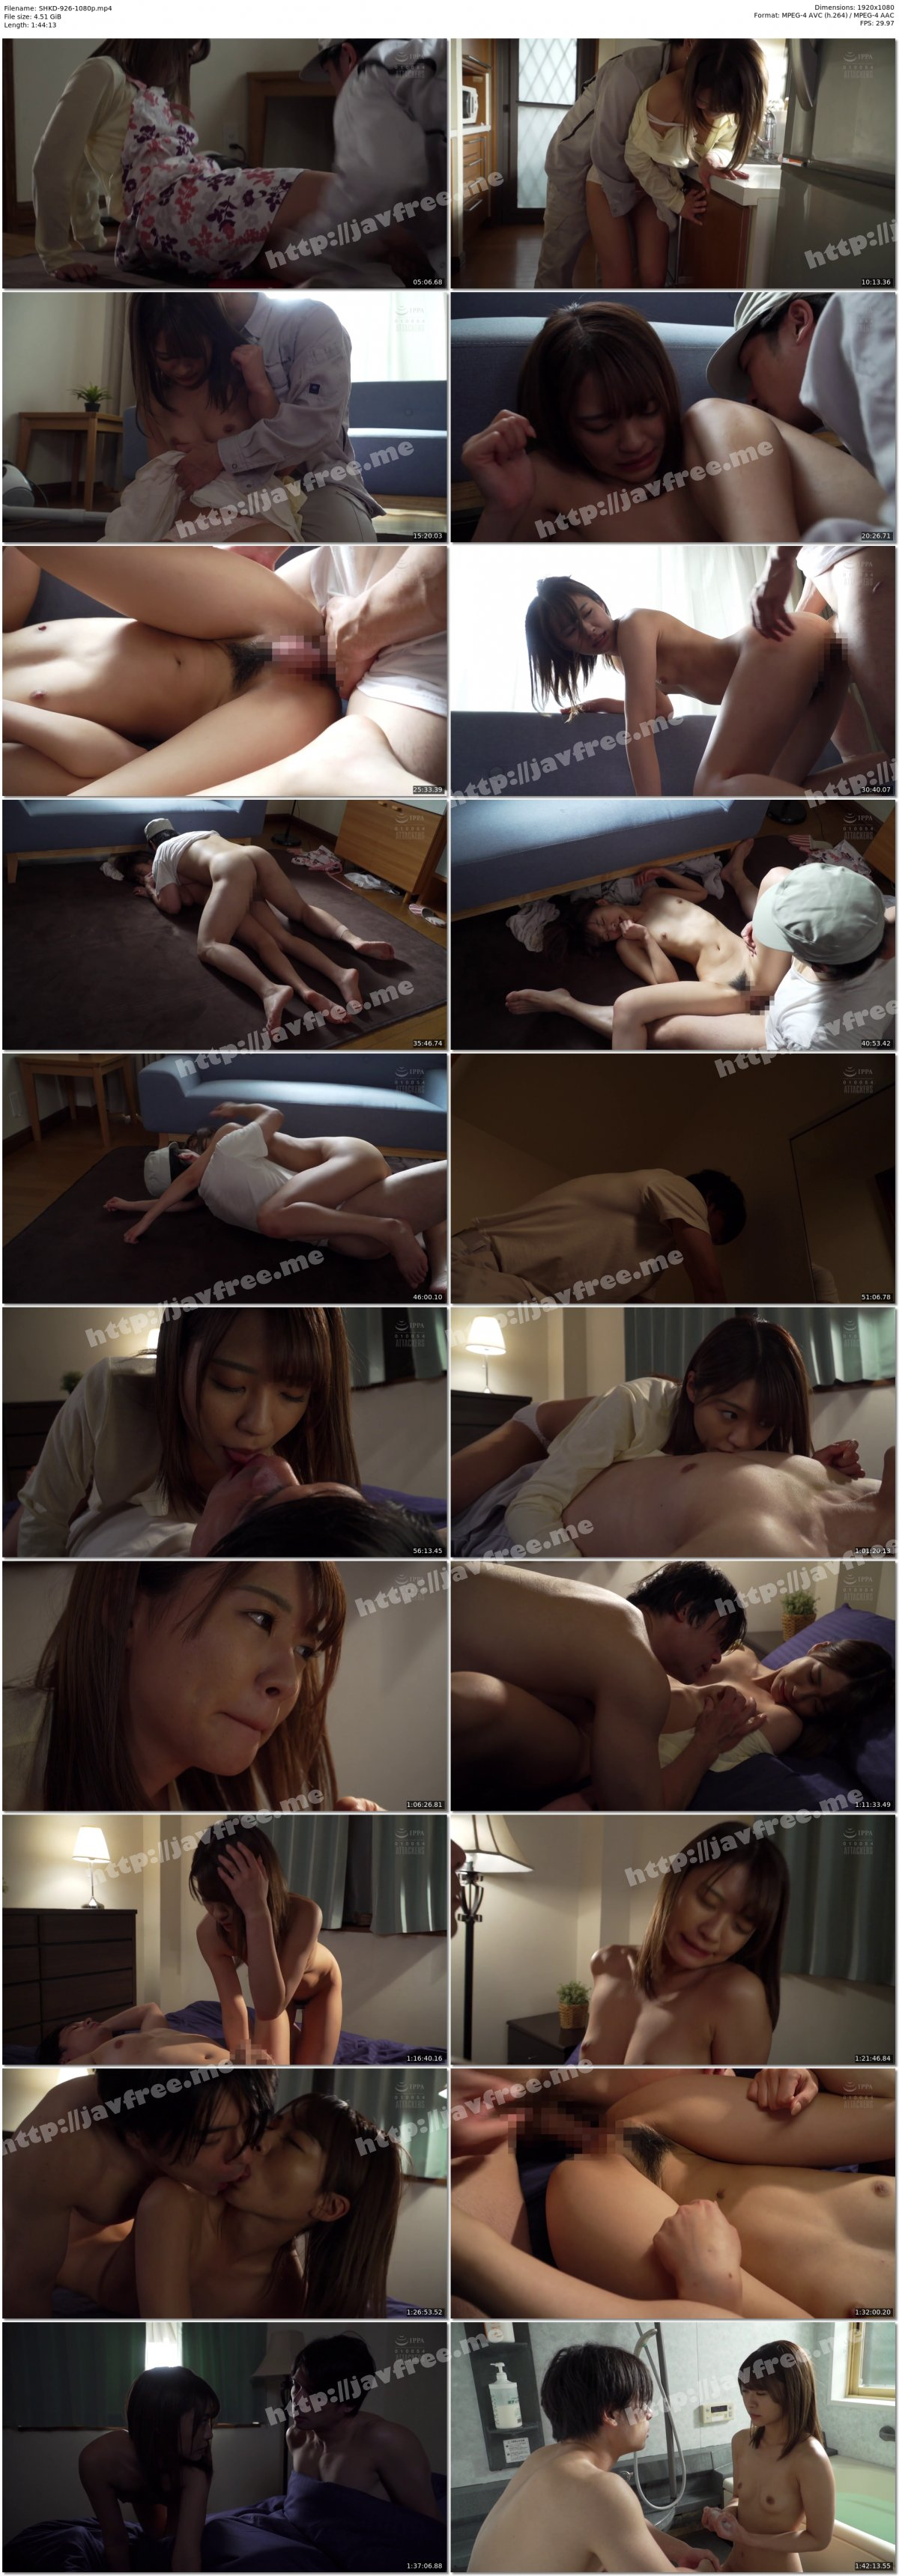 [HD][SHKD-926] 脱獄者 東條なつ - image SHKD-926-1080p on https://javfree.me